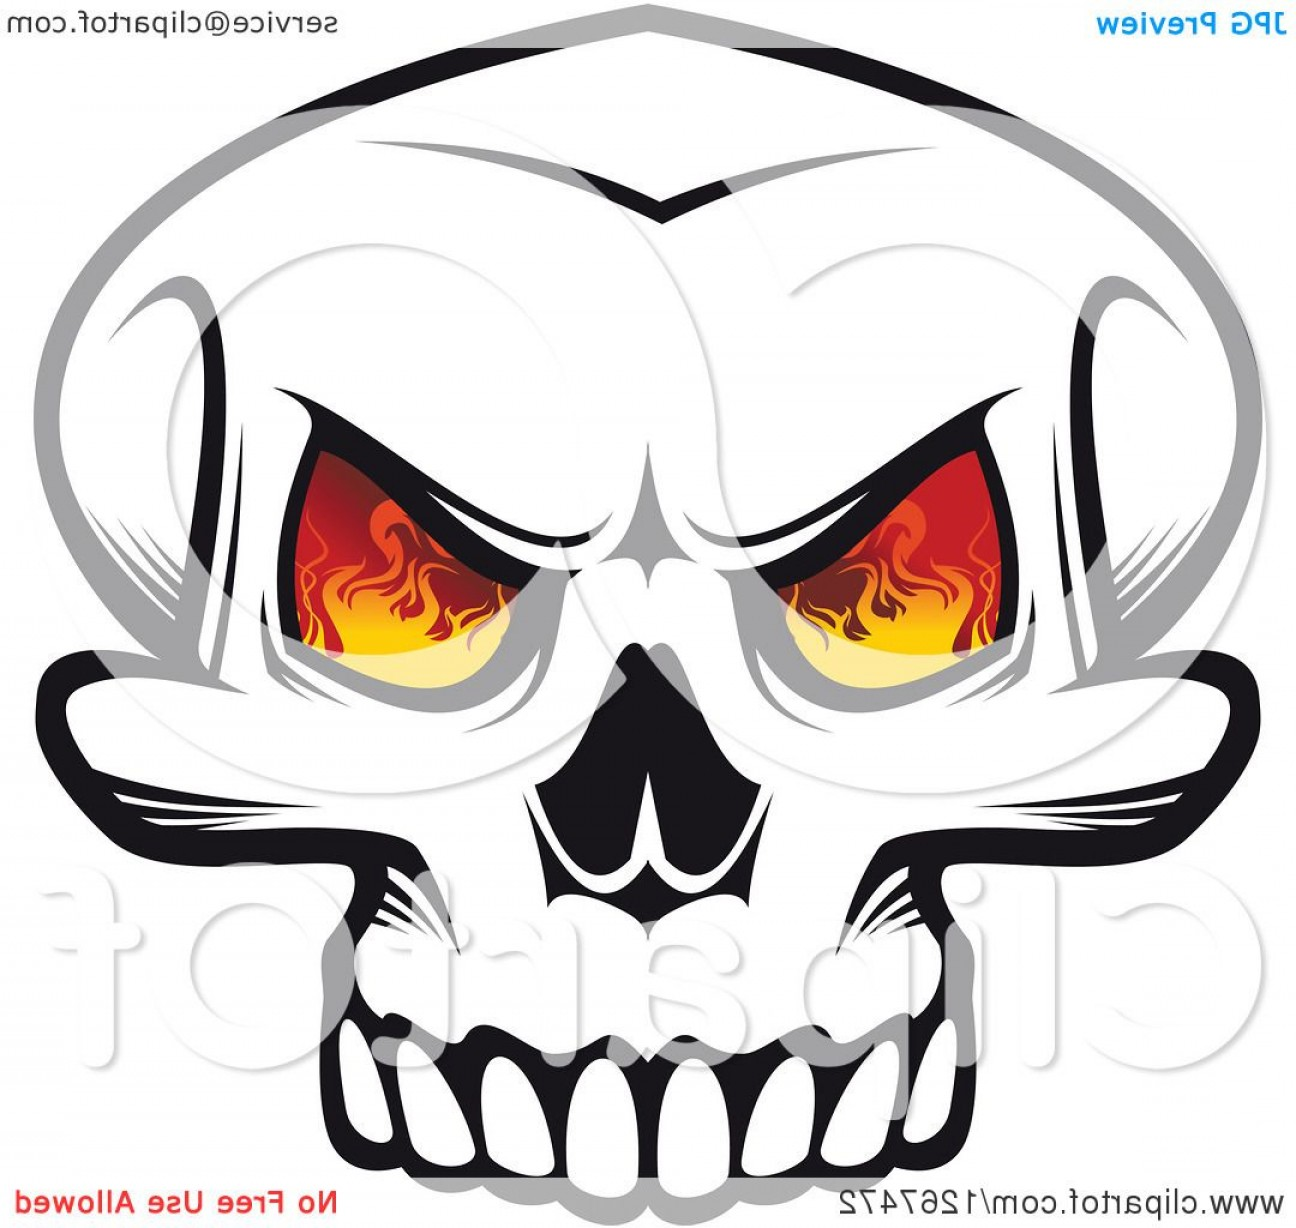 Eye Tribal Skull Vector: Black And White Human Skull With Flames In The Eye Sockets